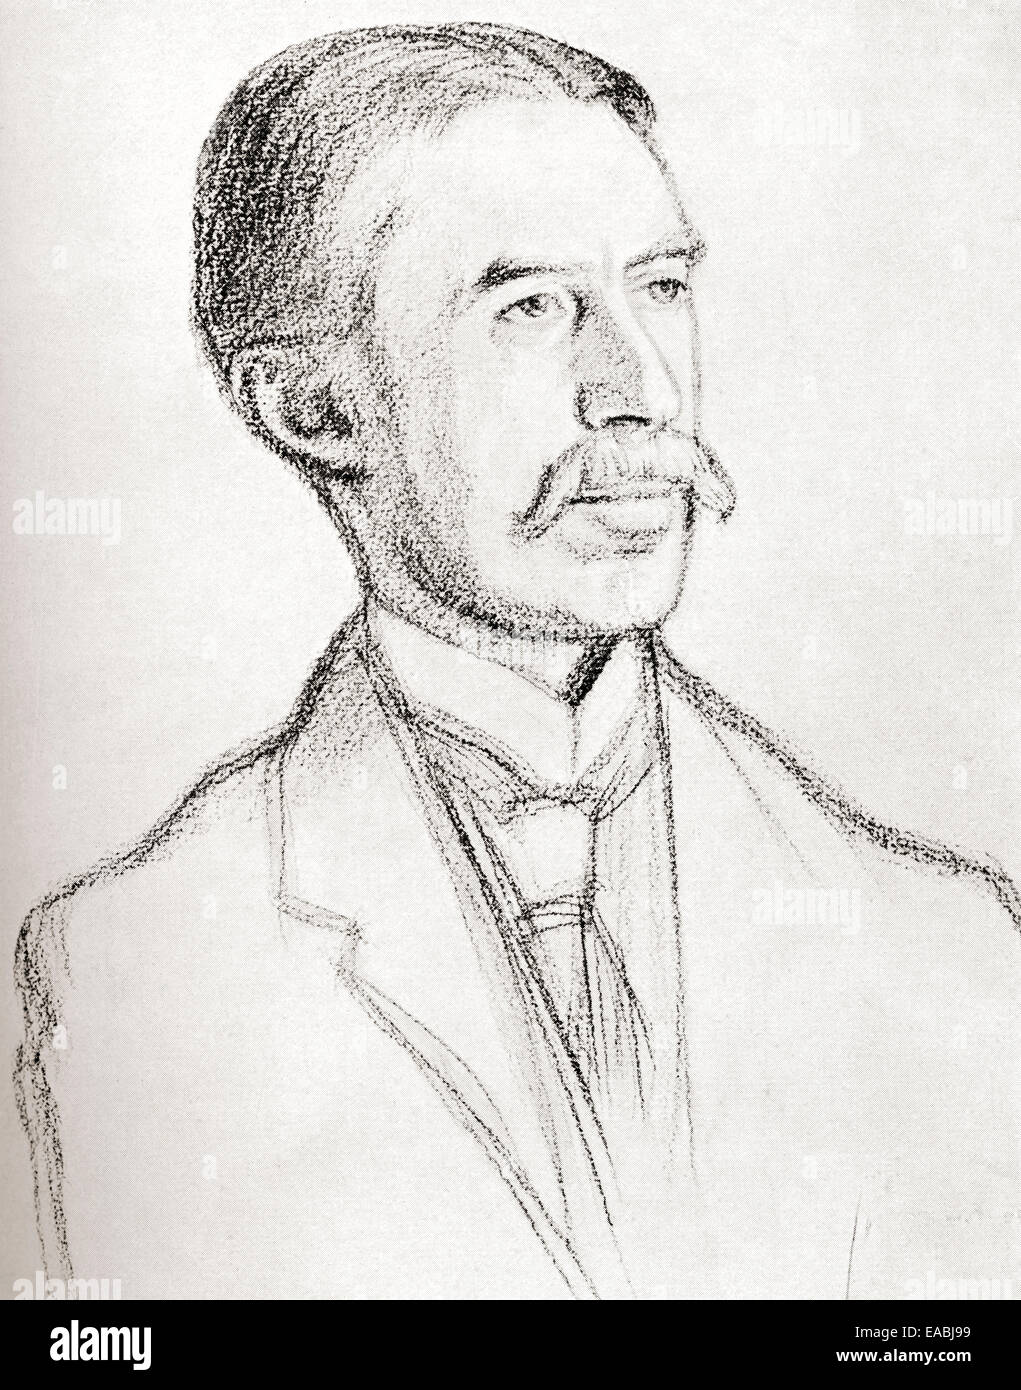 A.E. Houseman, after the drawing by William Rothenstein.  Alfred Edward Housman, 1859 –1936, aka A. E. Housman. - Stock Image